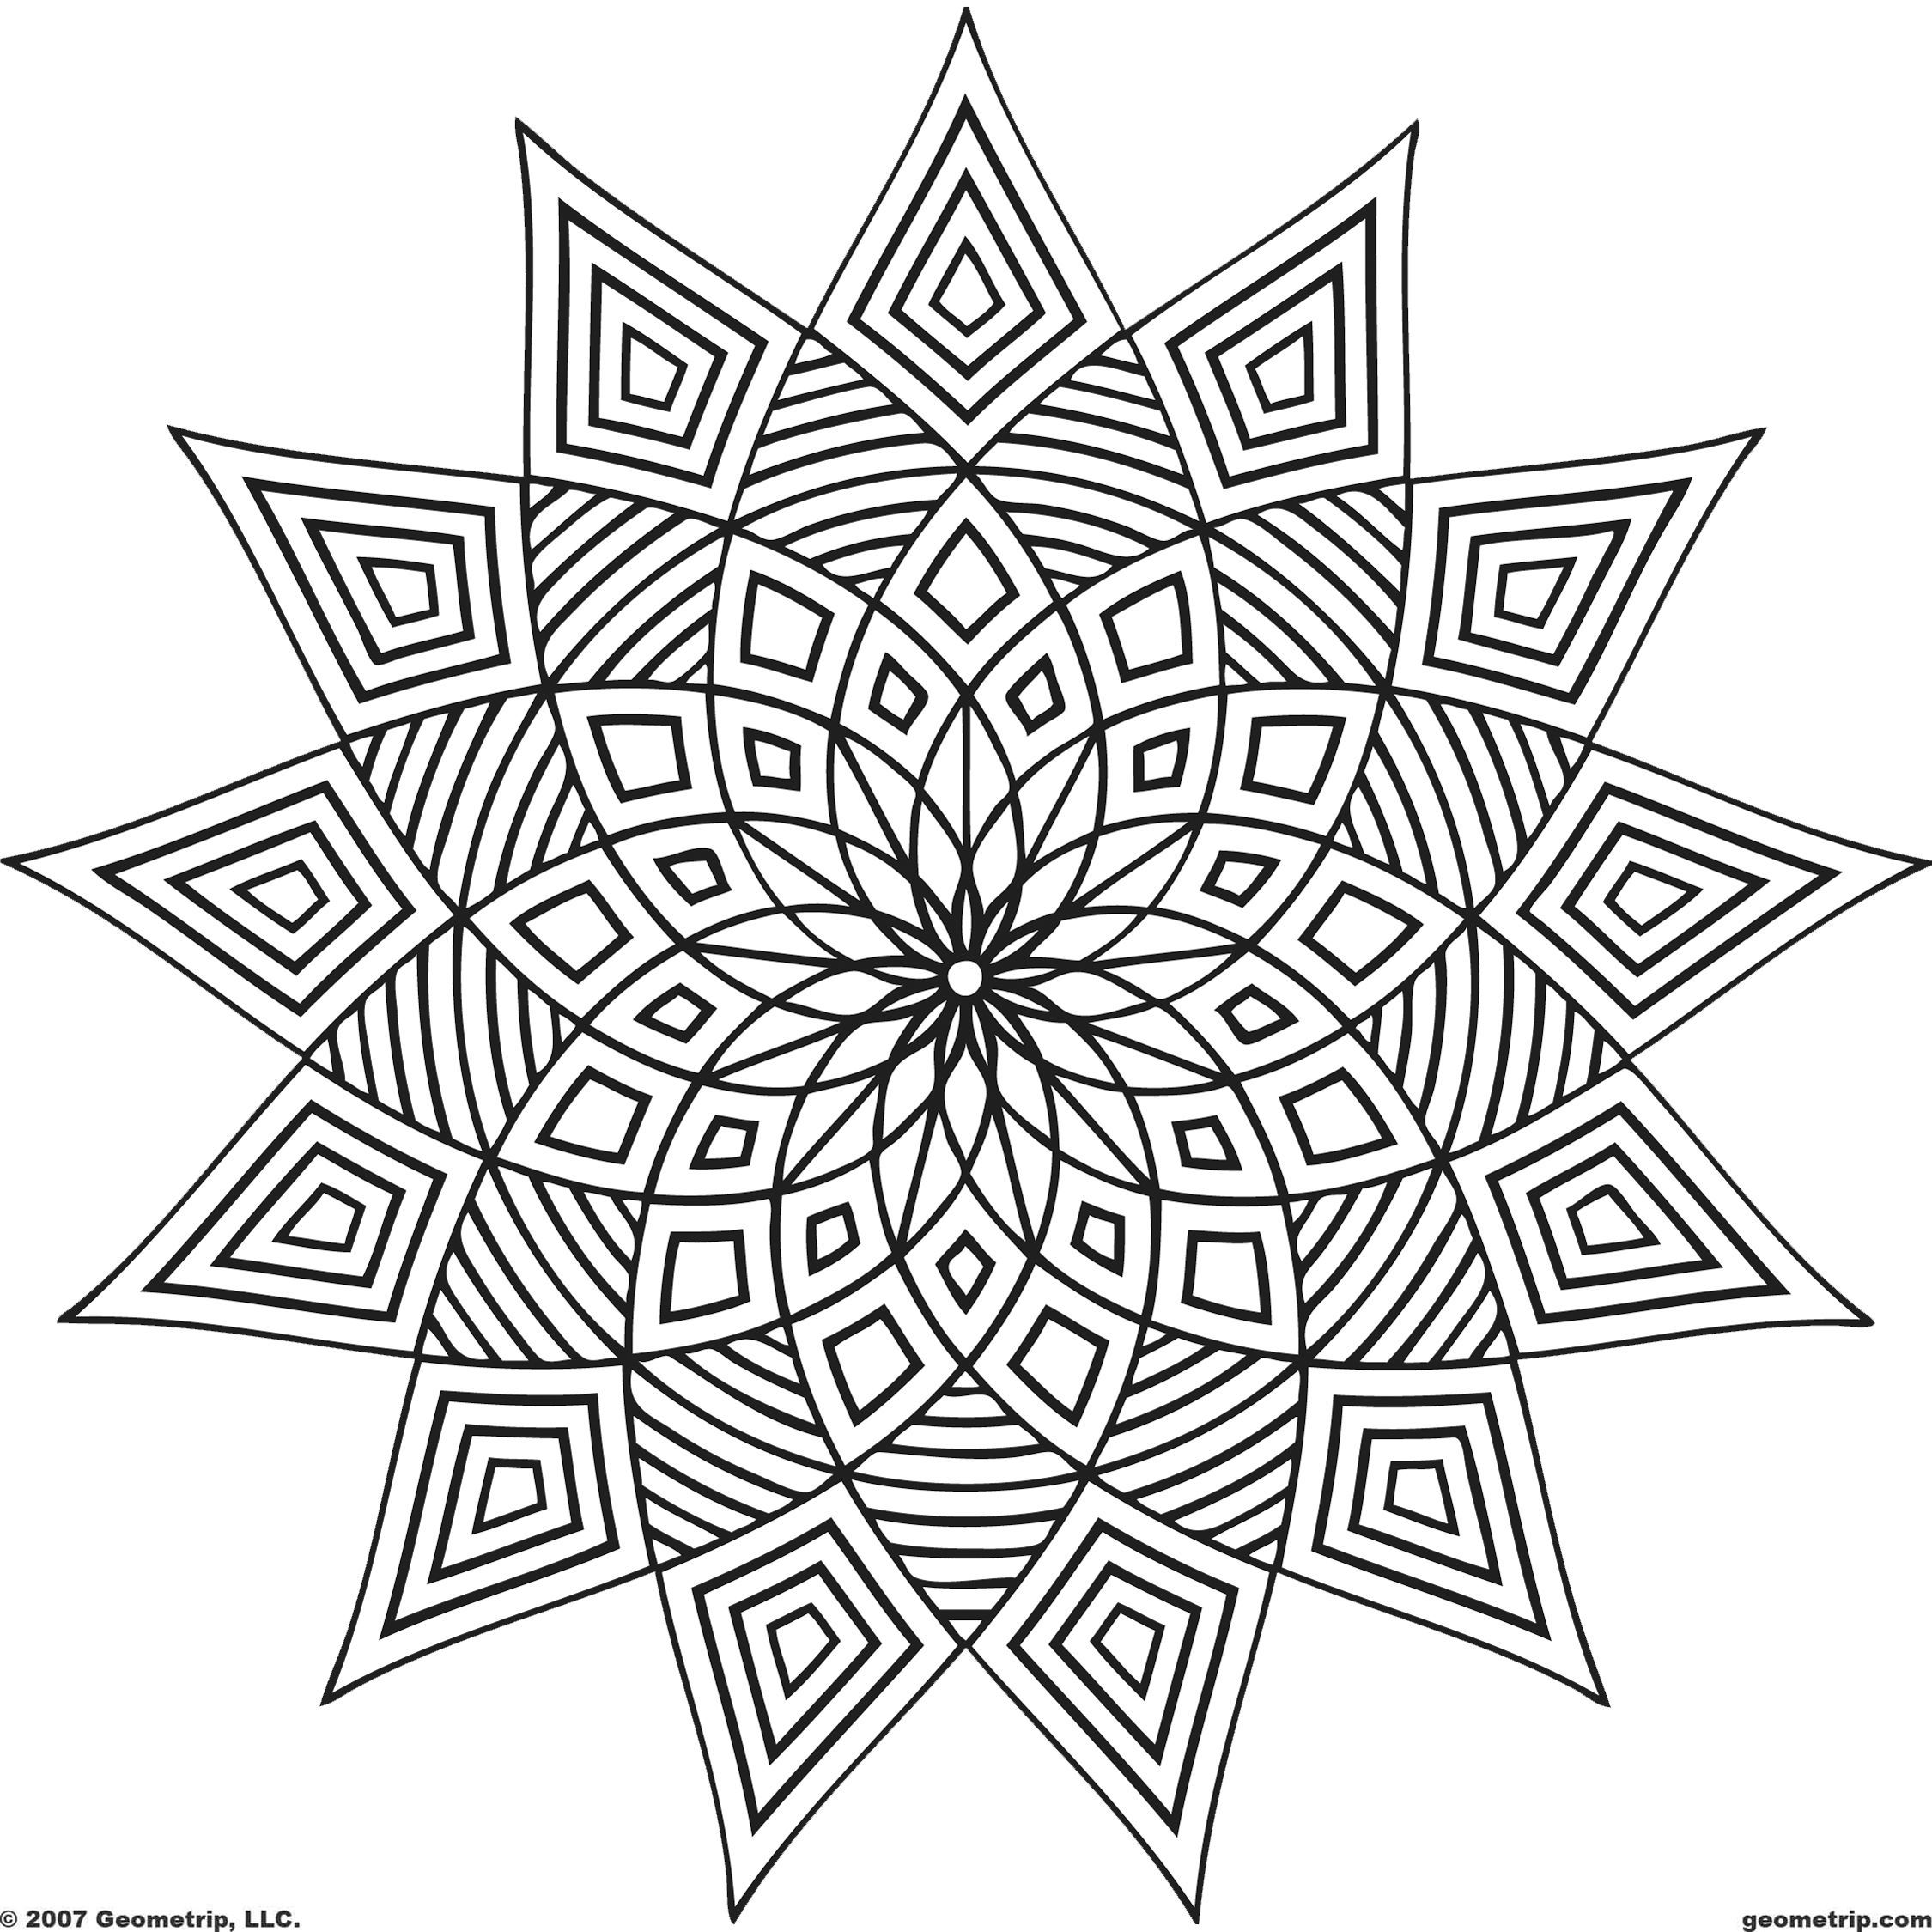 Geometric Coloring Pages Lots Of Pages To Download Printout And